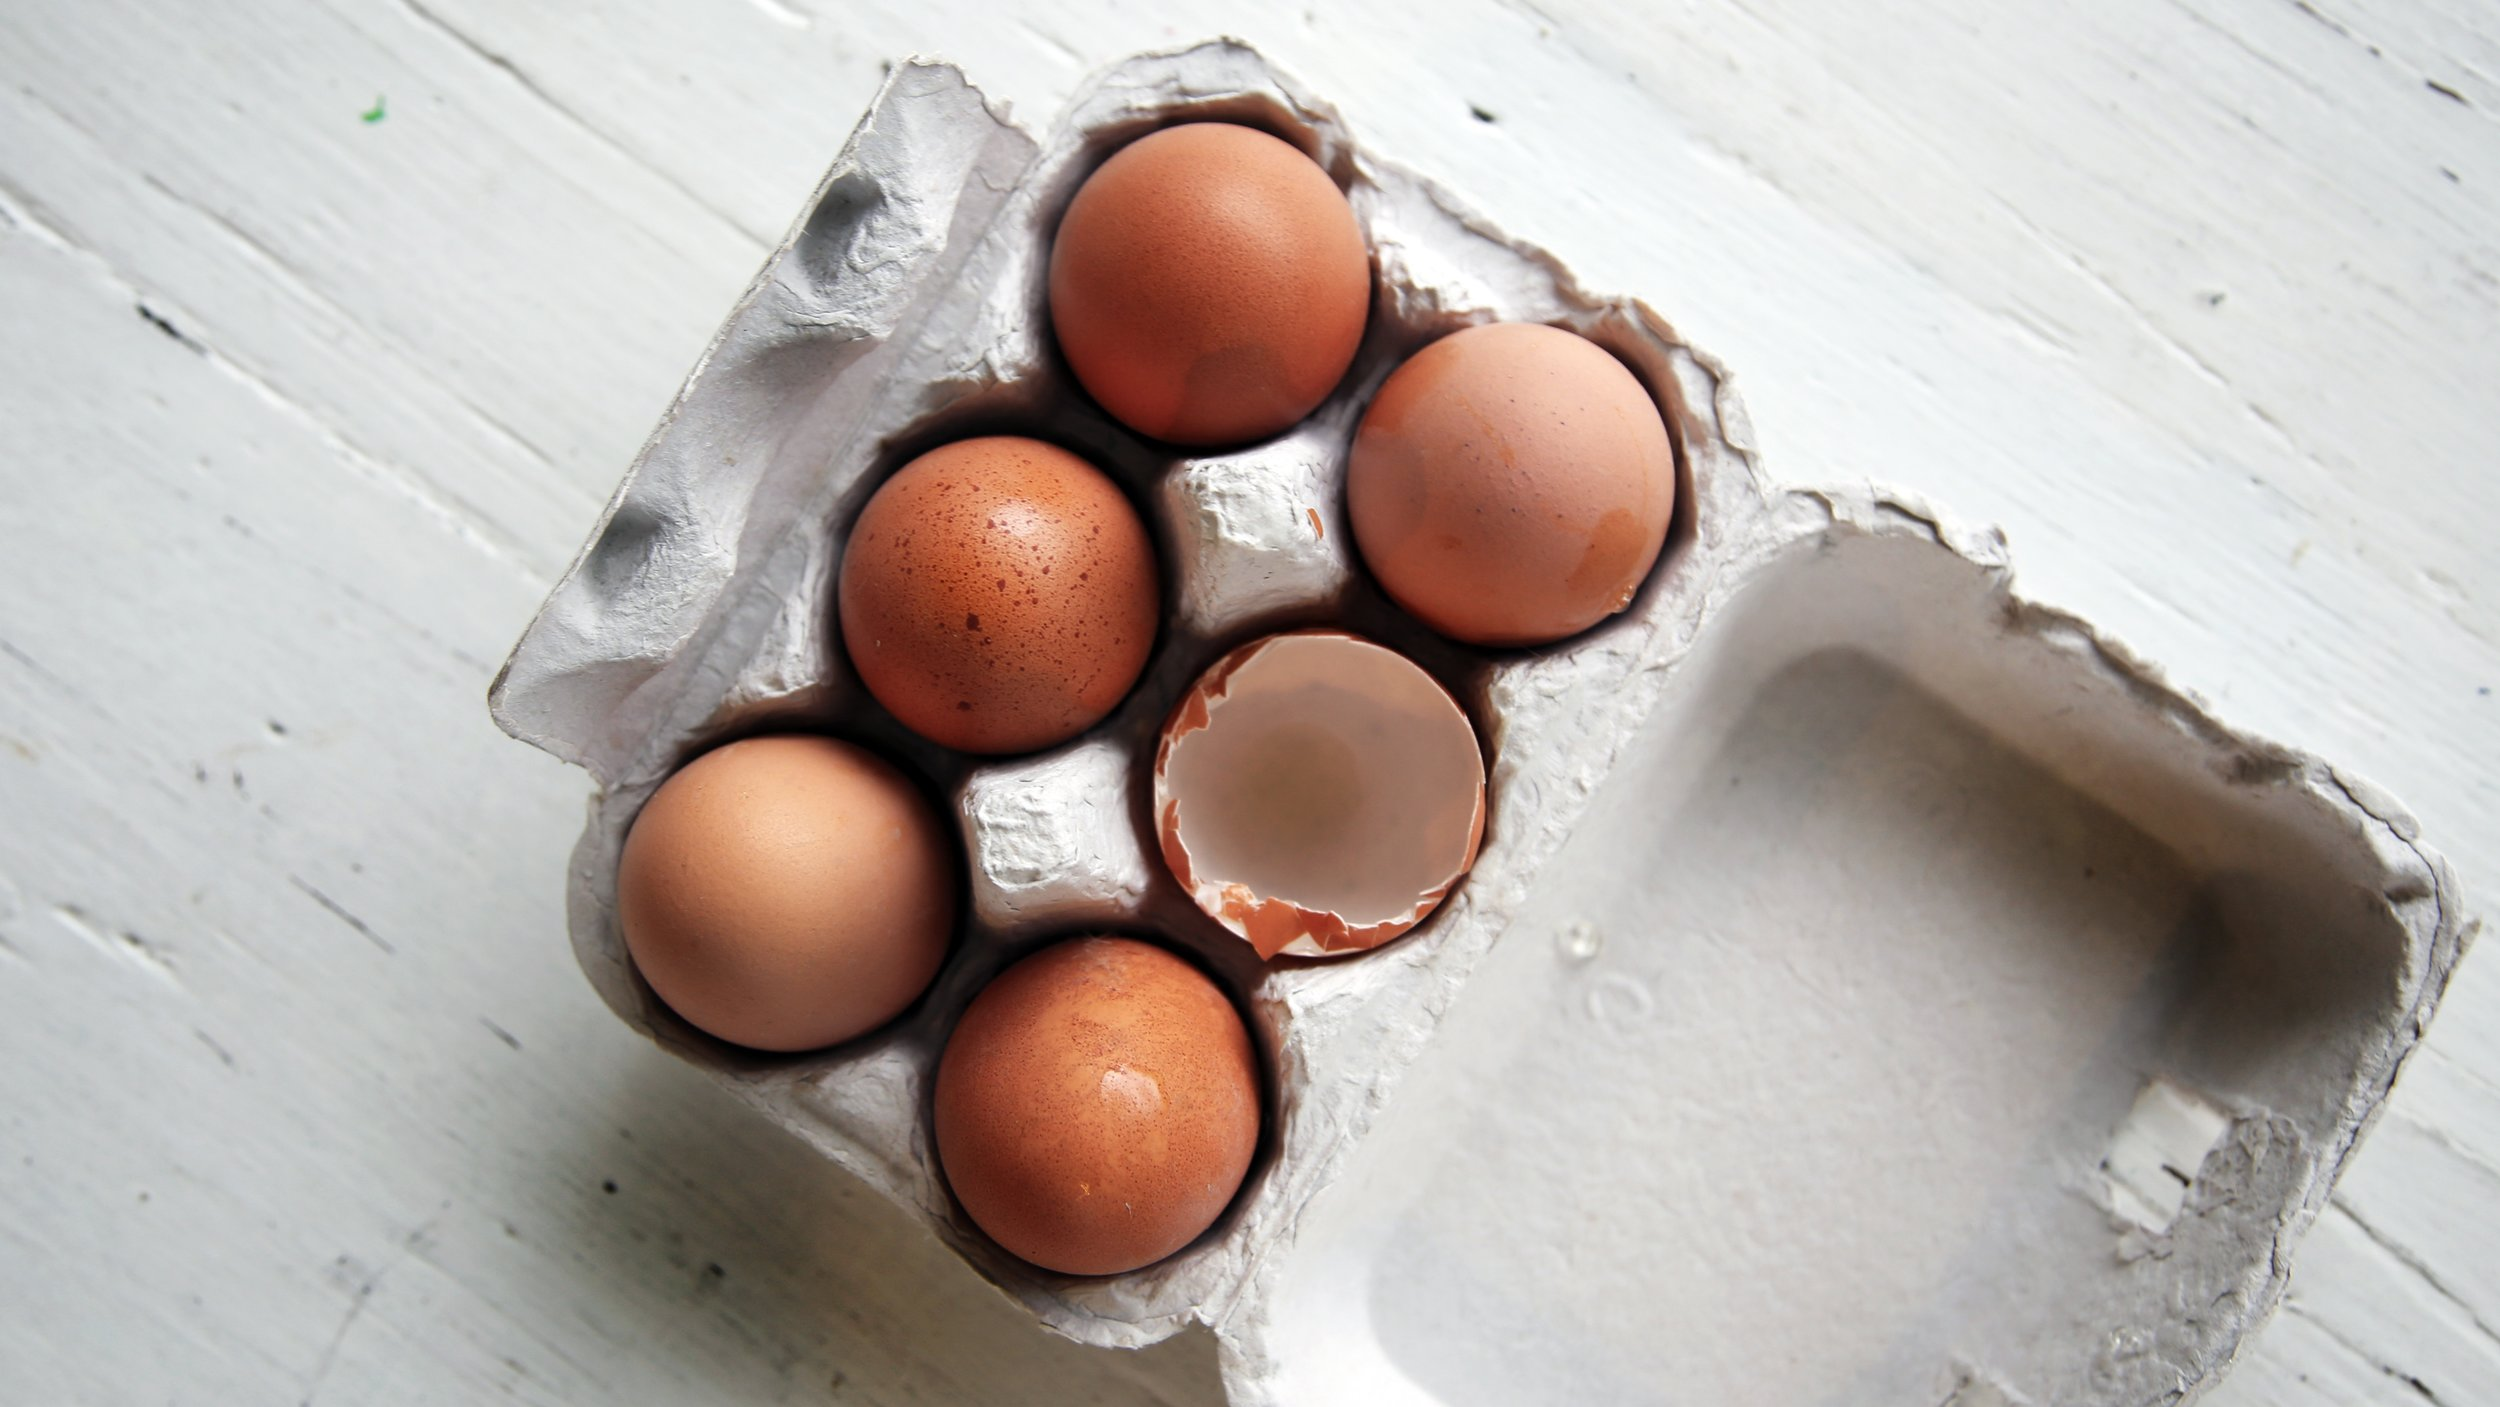 Eggs are a great source of protein!